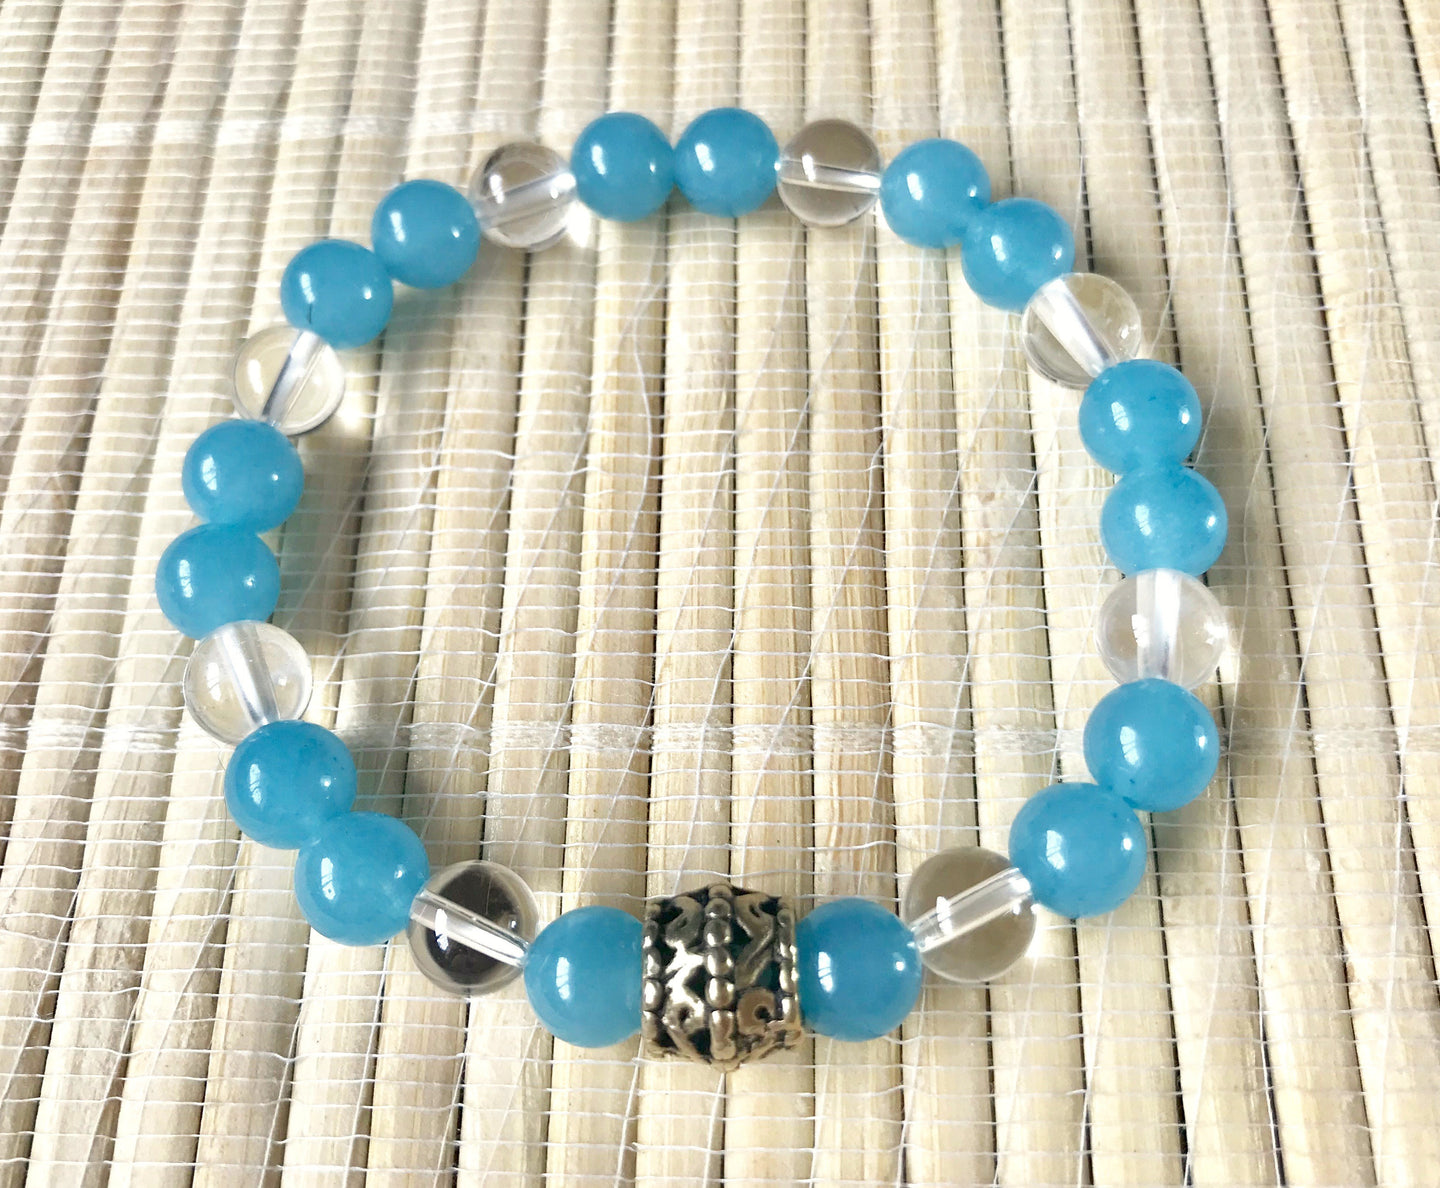 Aquamarine and Clear Quartz Stone of Courage, Protection, Communication Crystal Beads Bracelet